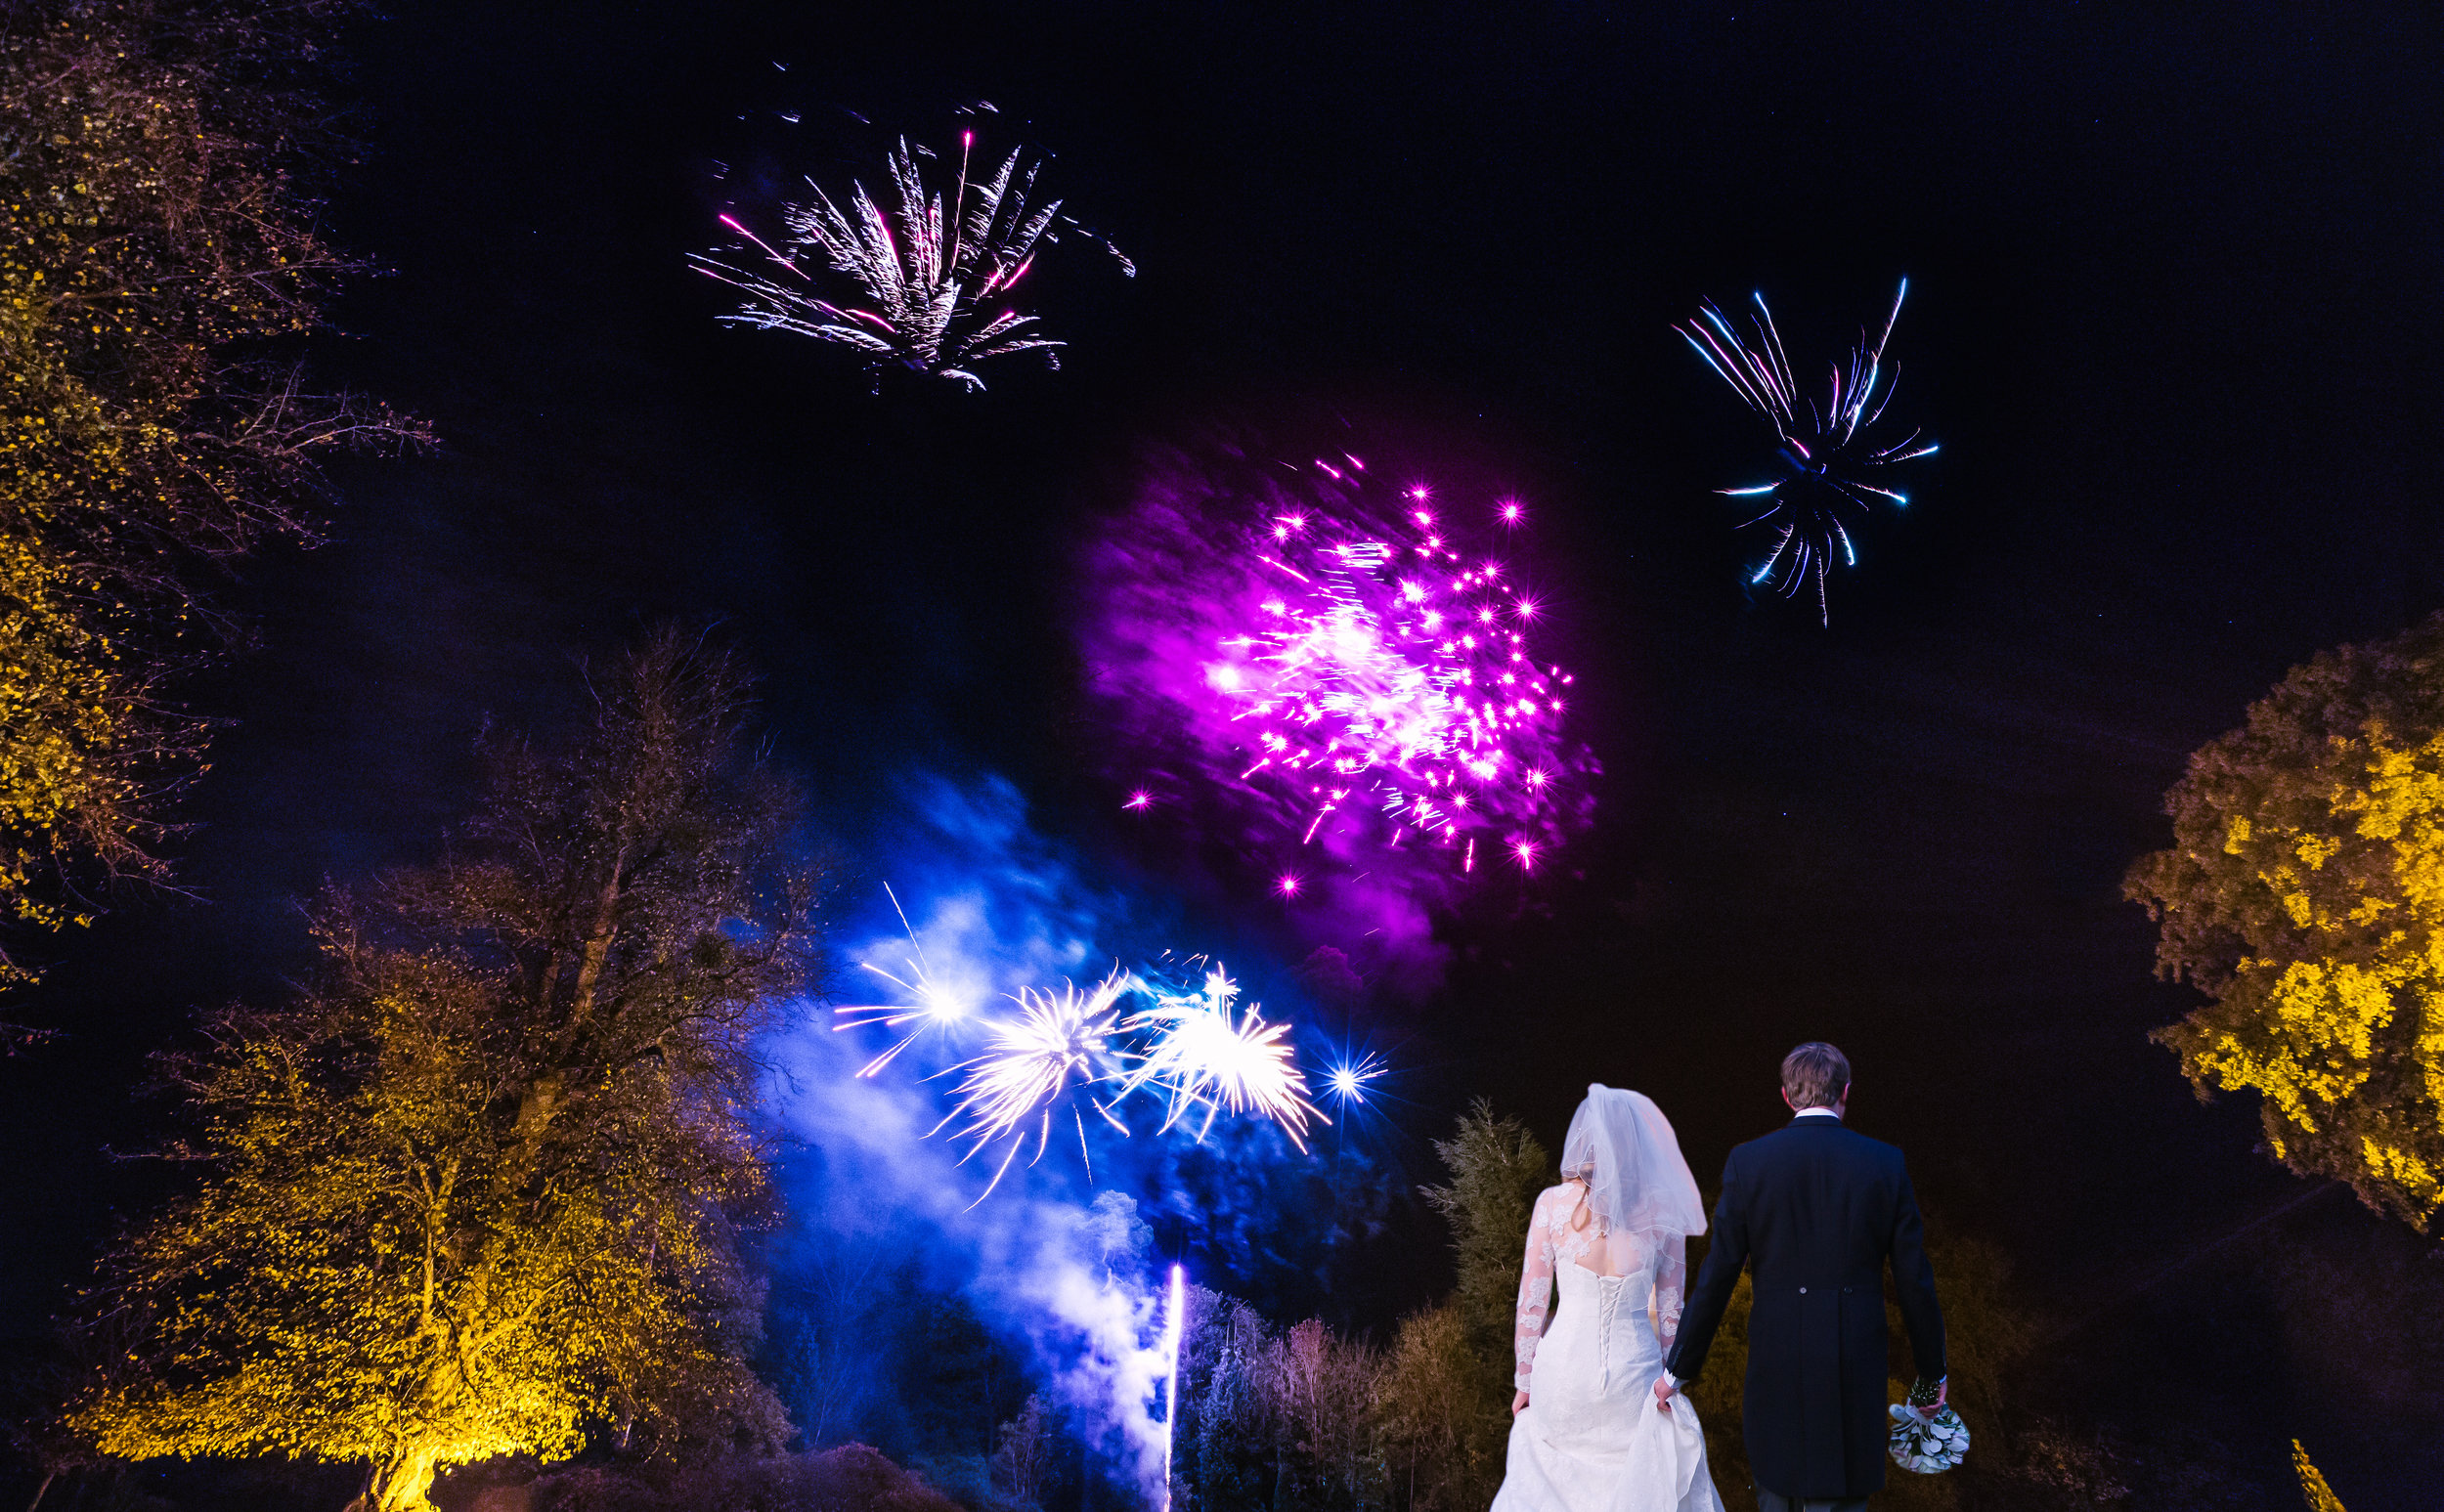 surrey-ascot-royal-berkshire-hotel-autumn-wedding-sparklers-fireworks-69